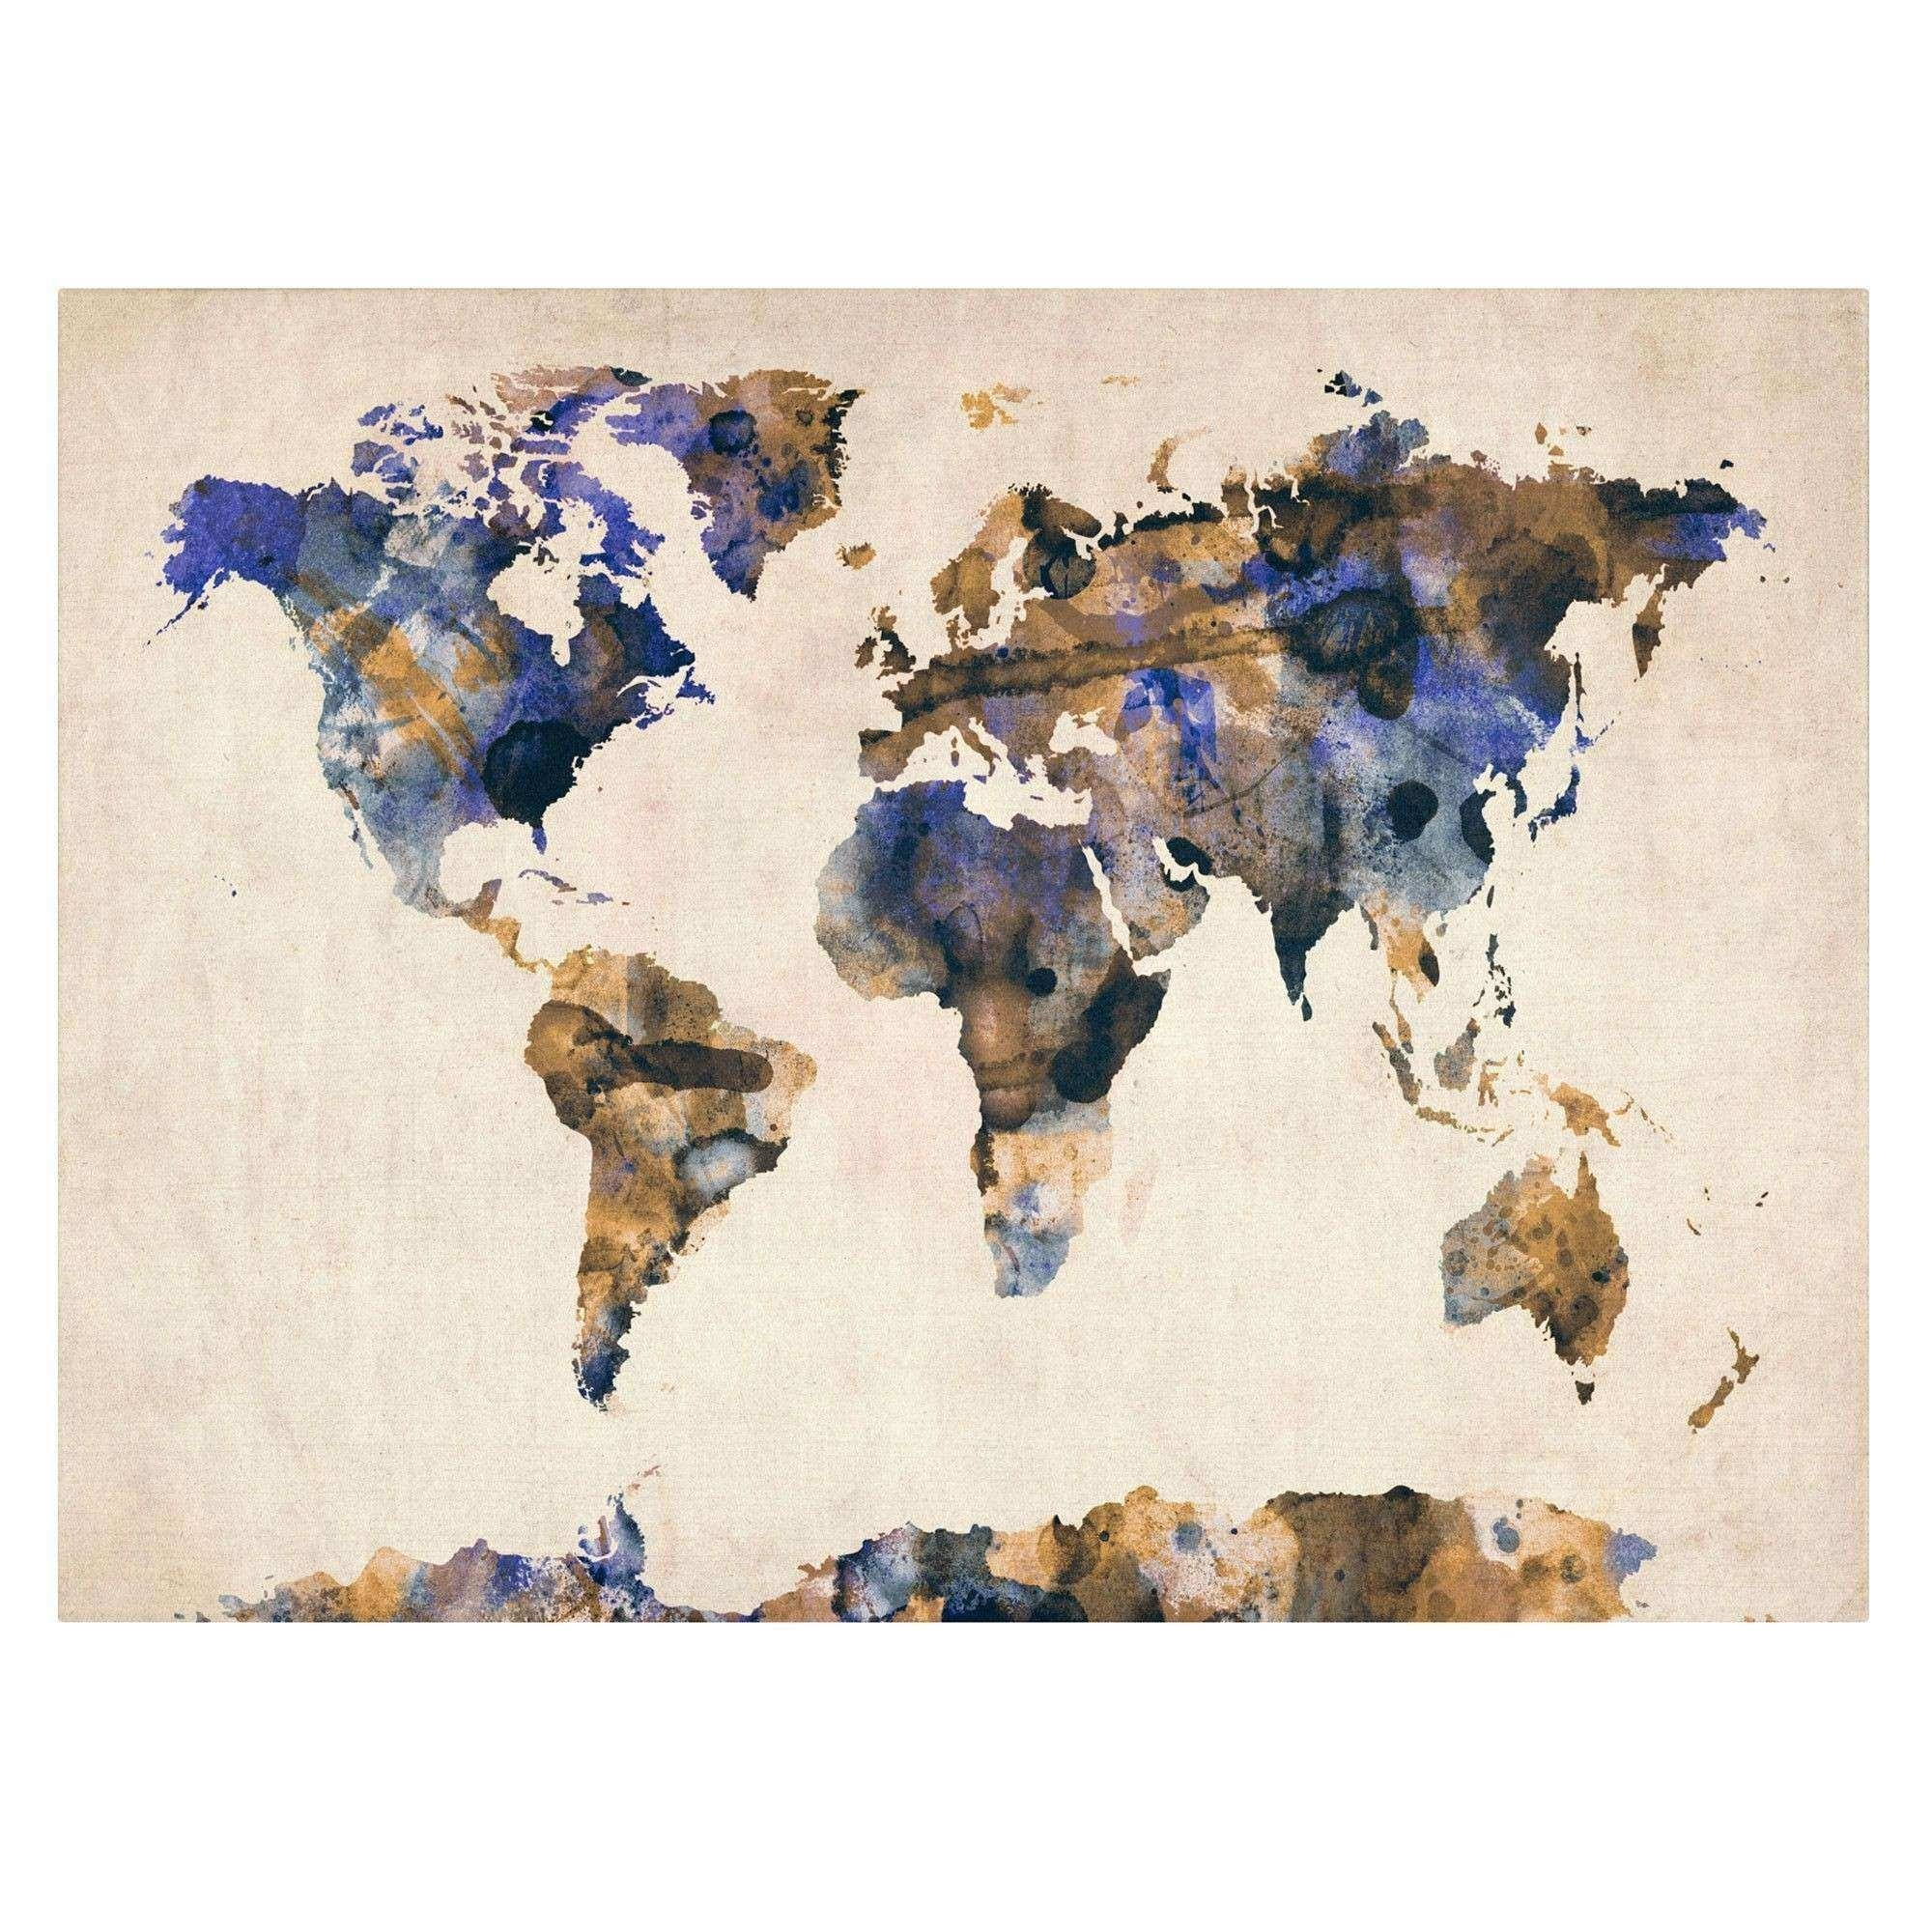 World Map Prints Wall Art Fresh Joss And Main Wall Art Pinterest in Joss and Main Wall Art (Image 20 of 20)